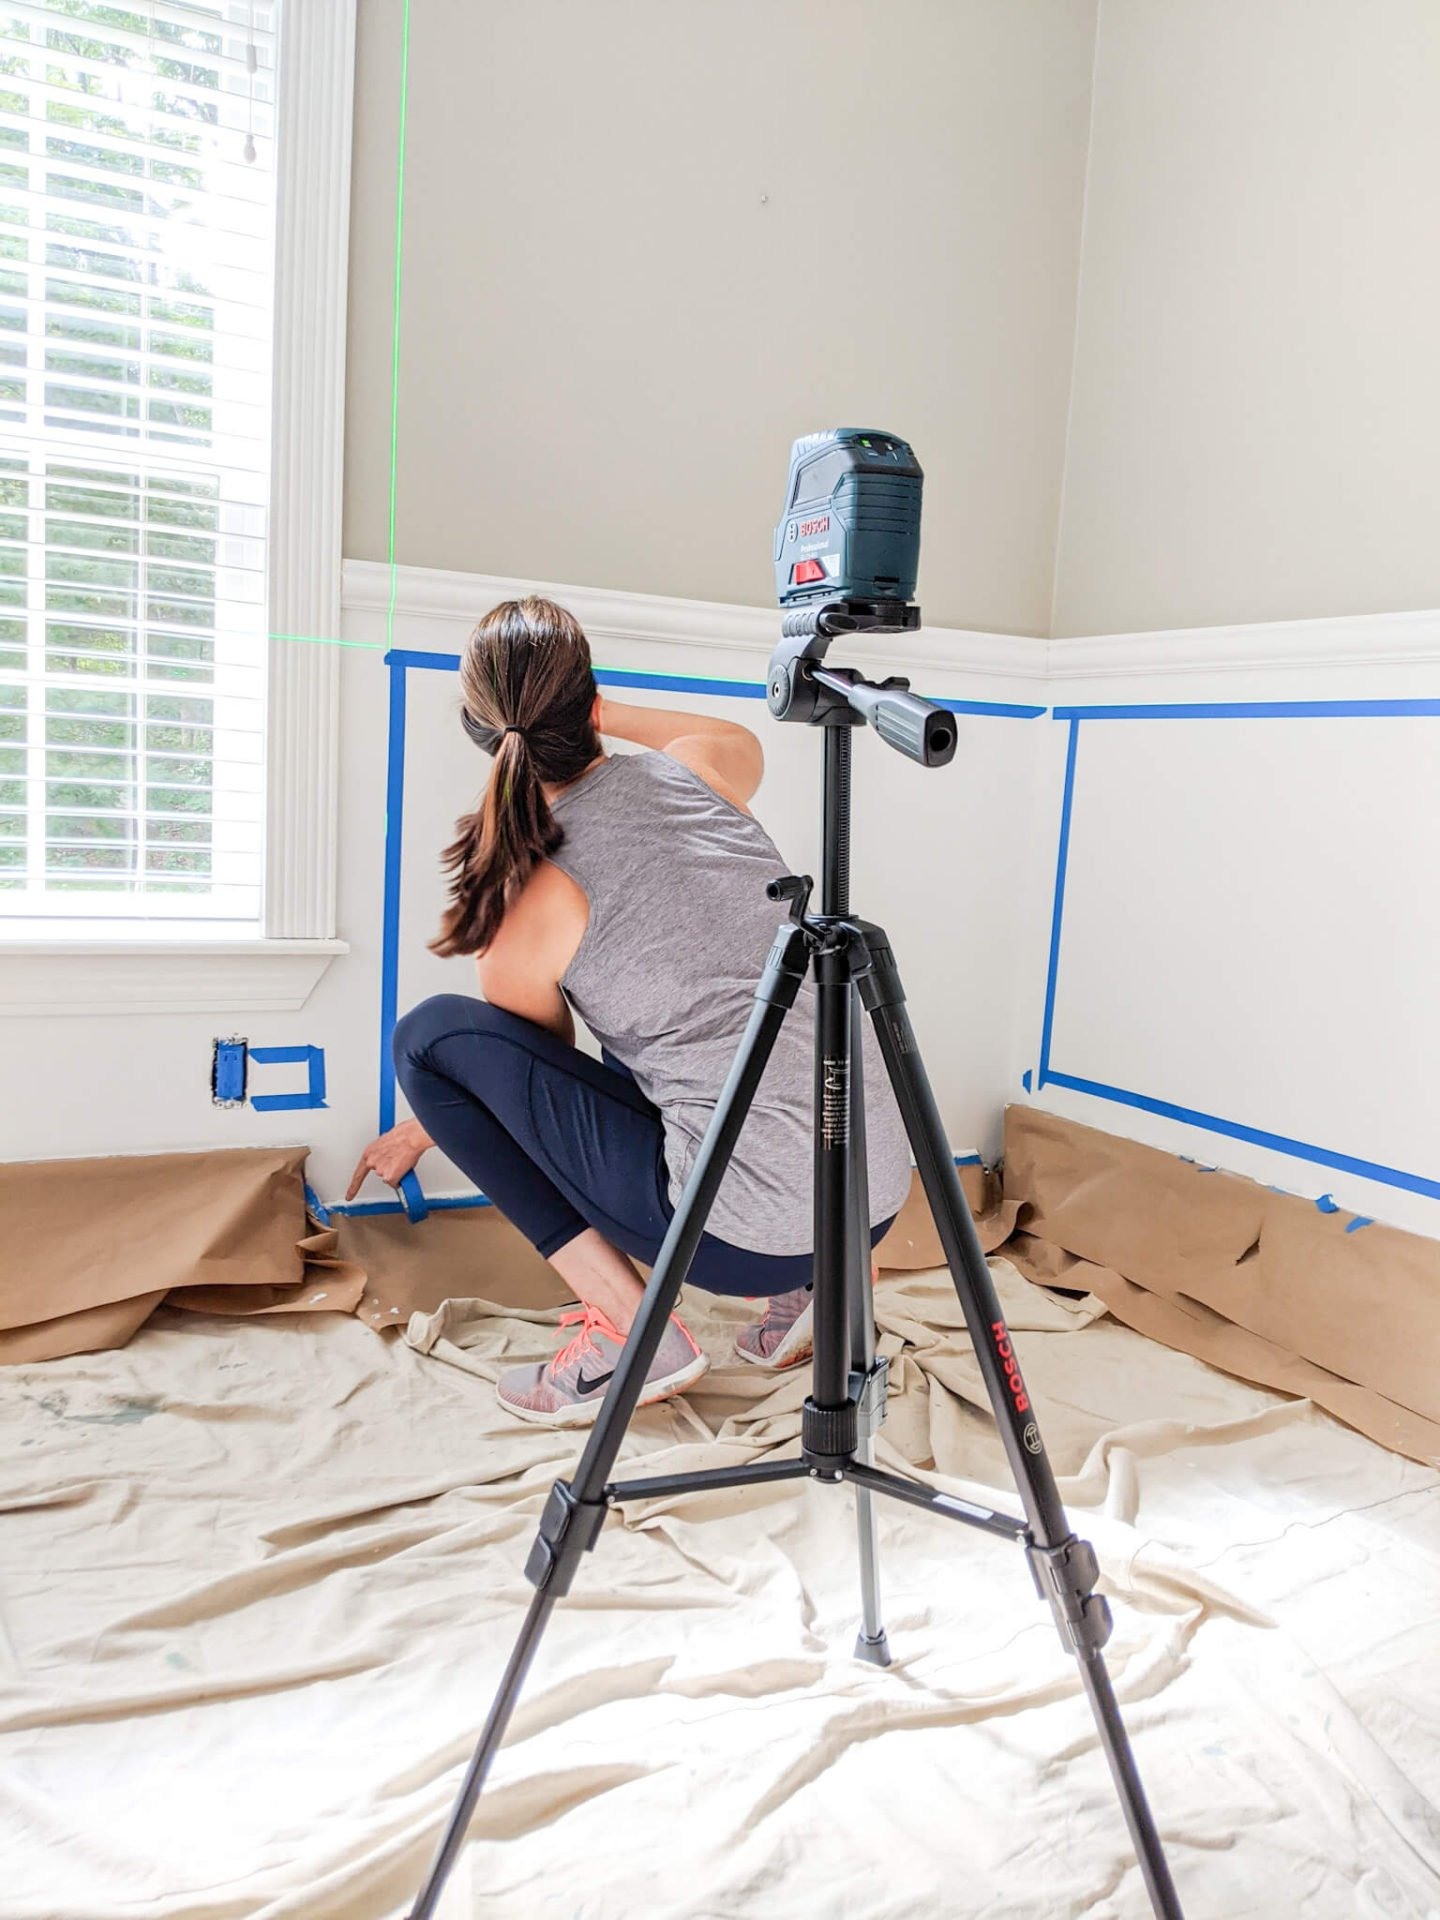 Retaping the walls using a laser level after painting them.